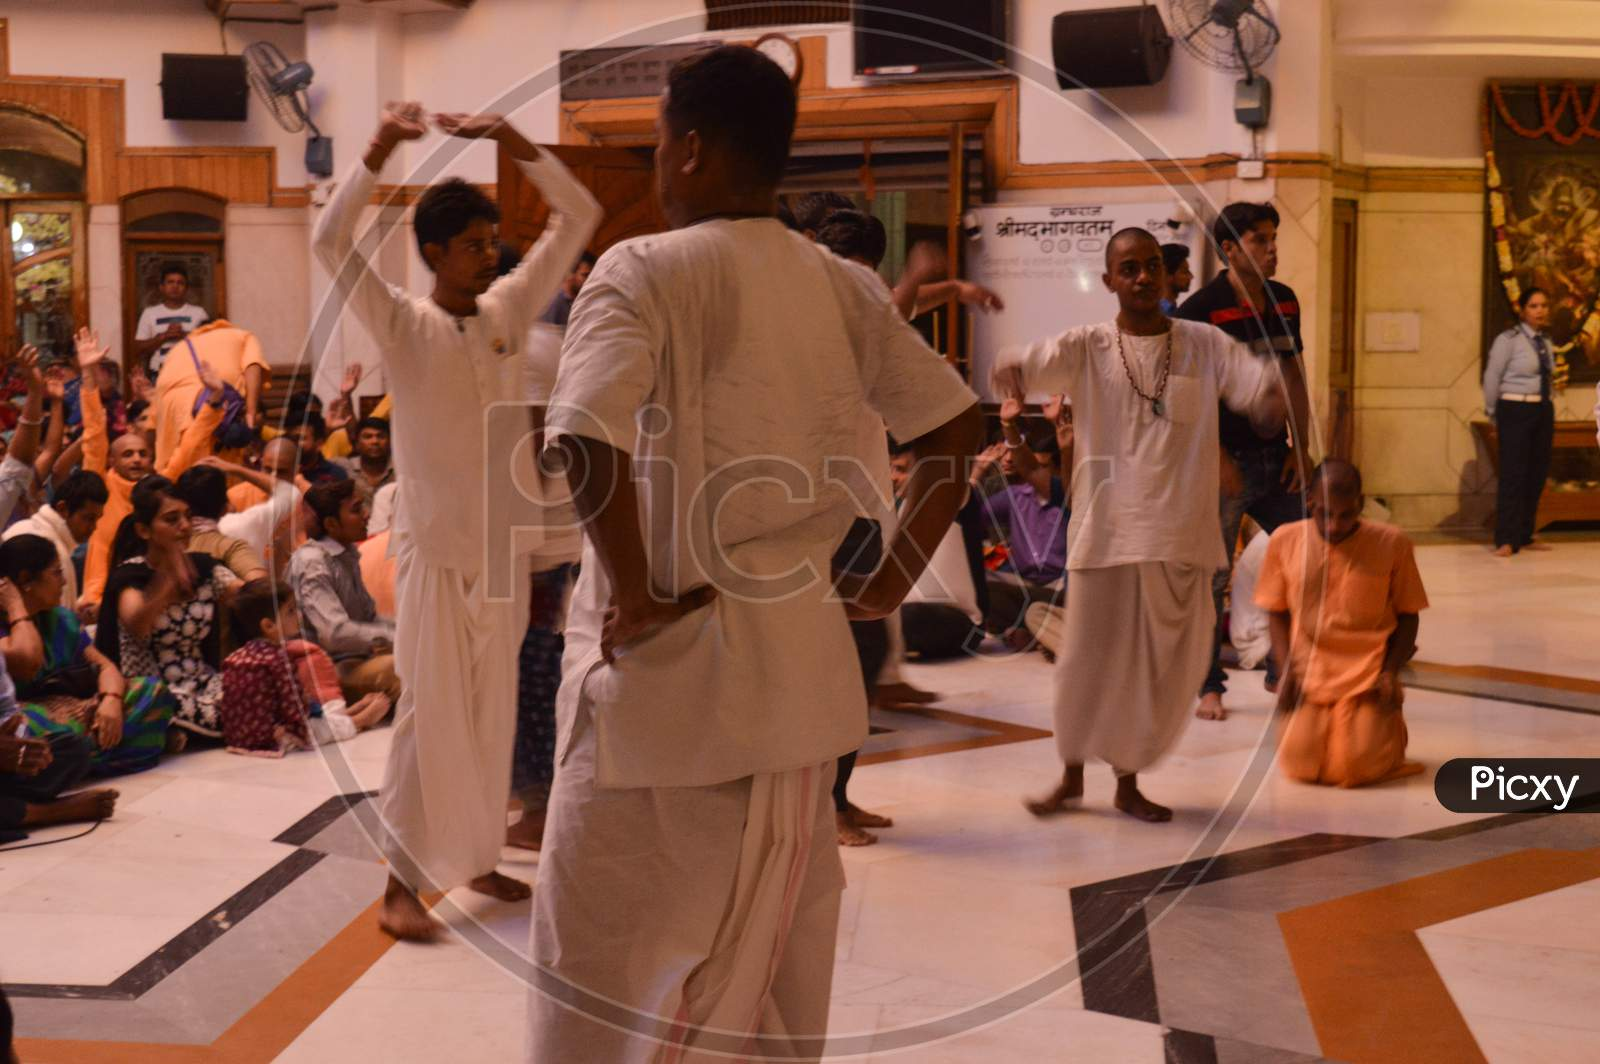 On The Indian Festival Of Lord Krishna Birth Ceremony( Janmastami) People Are Dancing, Enjoying, Celebrating, Raising Hand At Night At Iskcon Temple New Delhi, India.